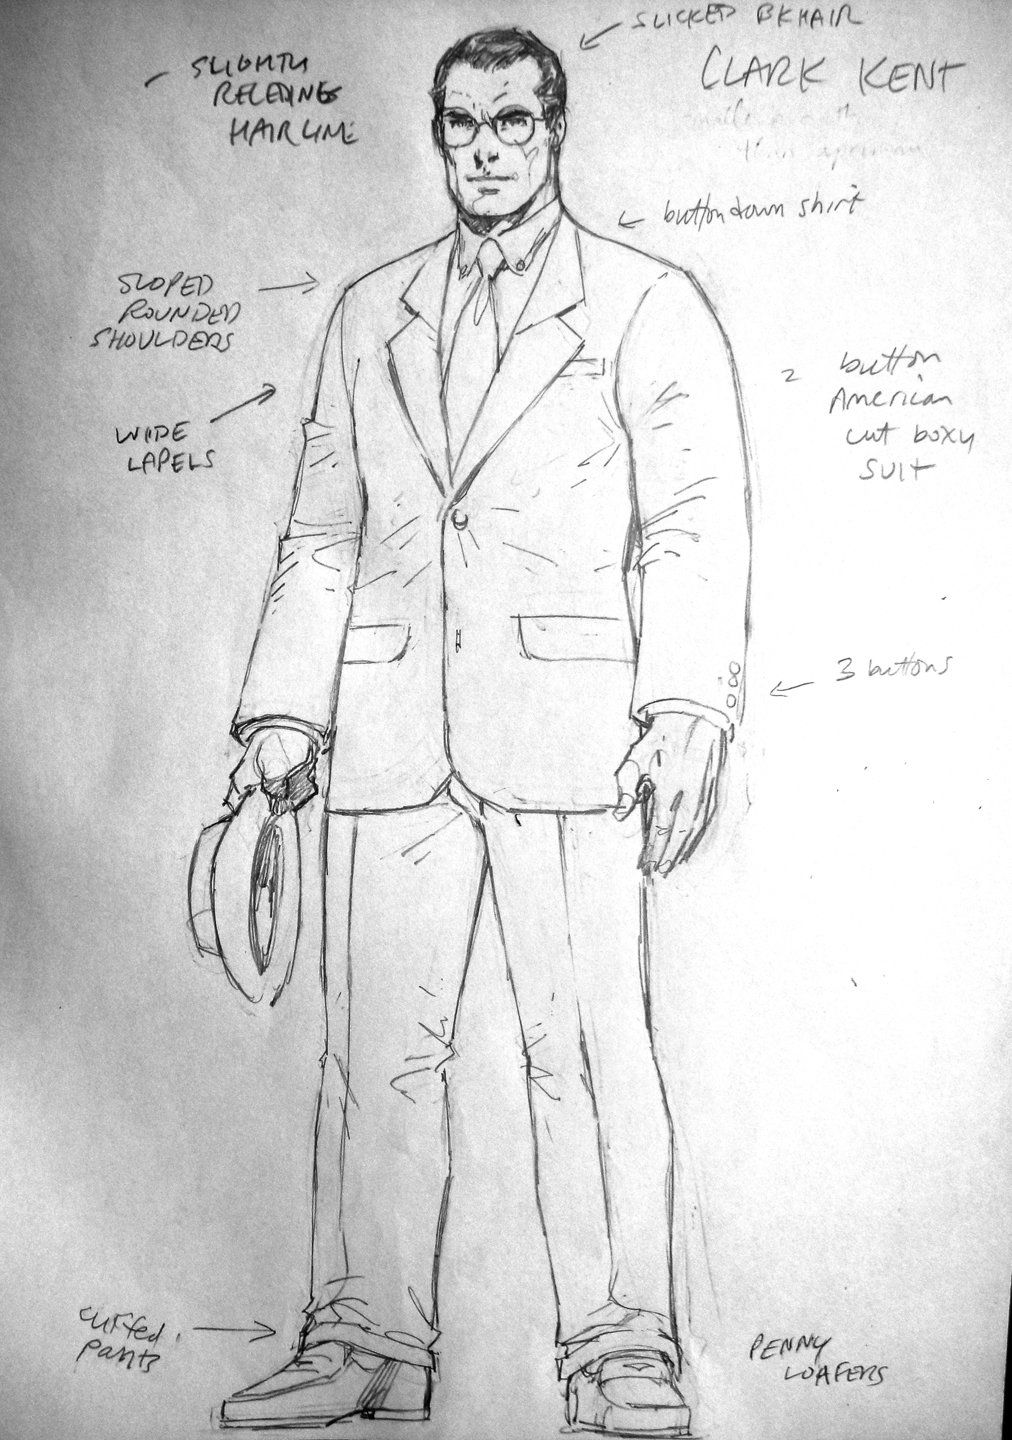 This is a picture of Fan Clark Kent Drawing